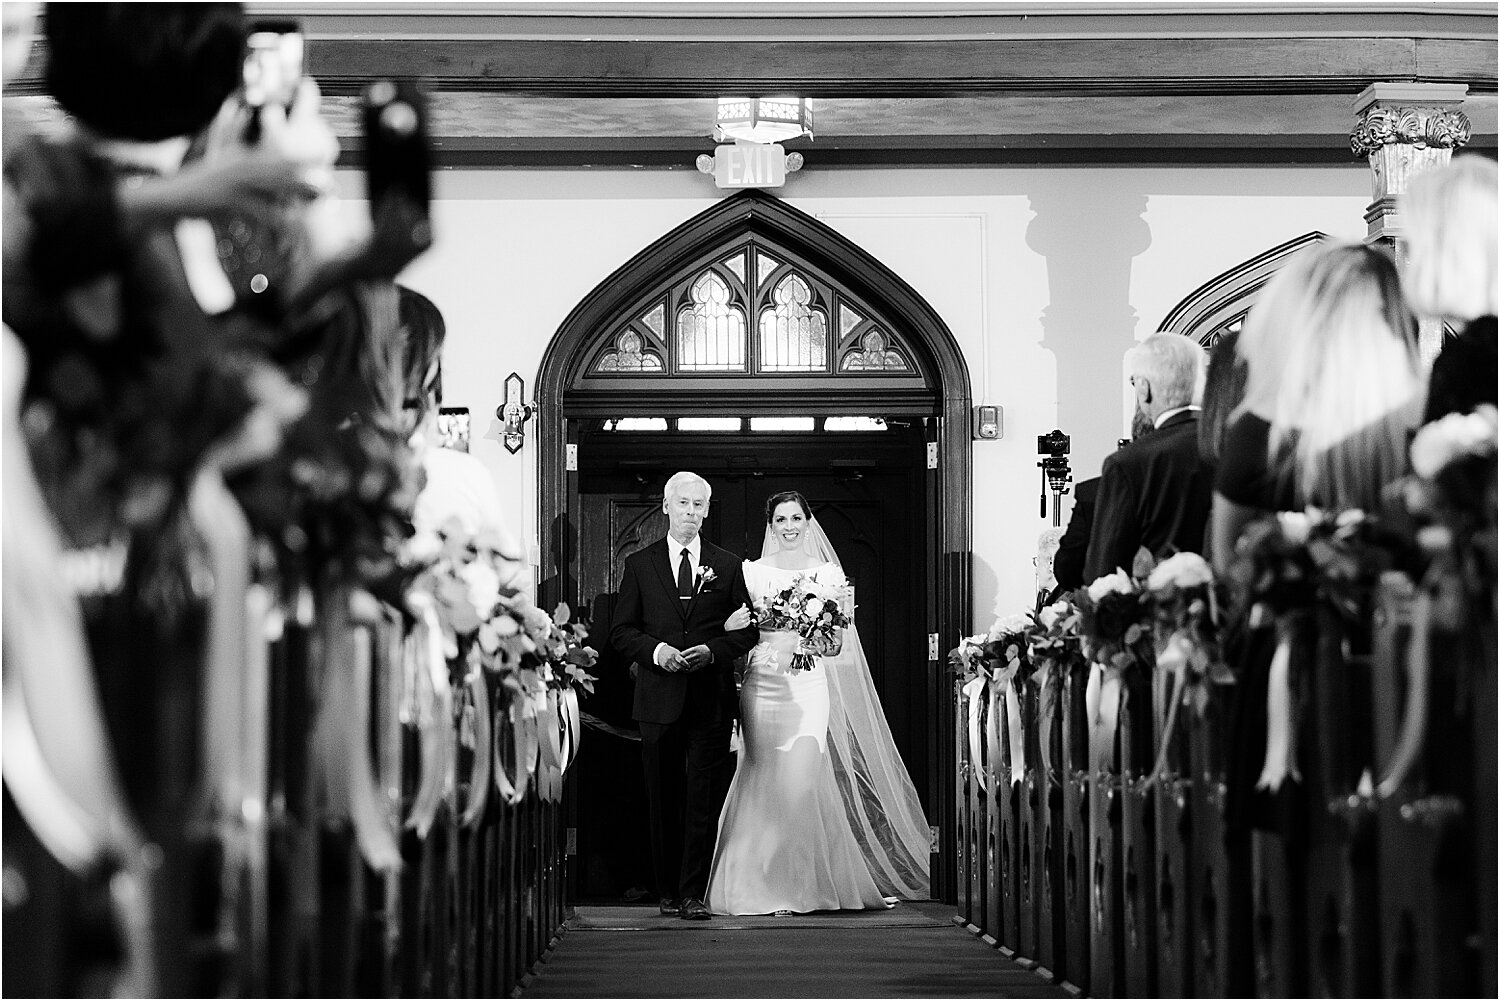 father walks bride down the aisle at church wedding ceremony